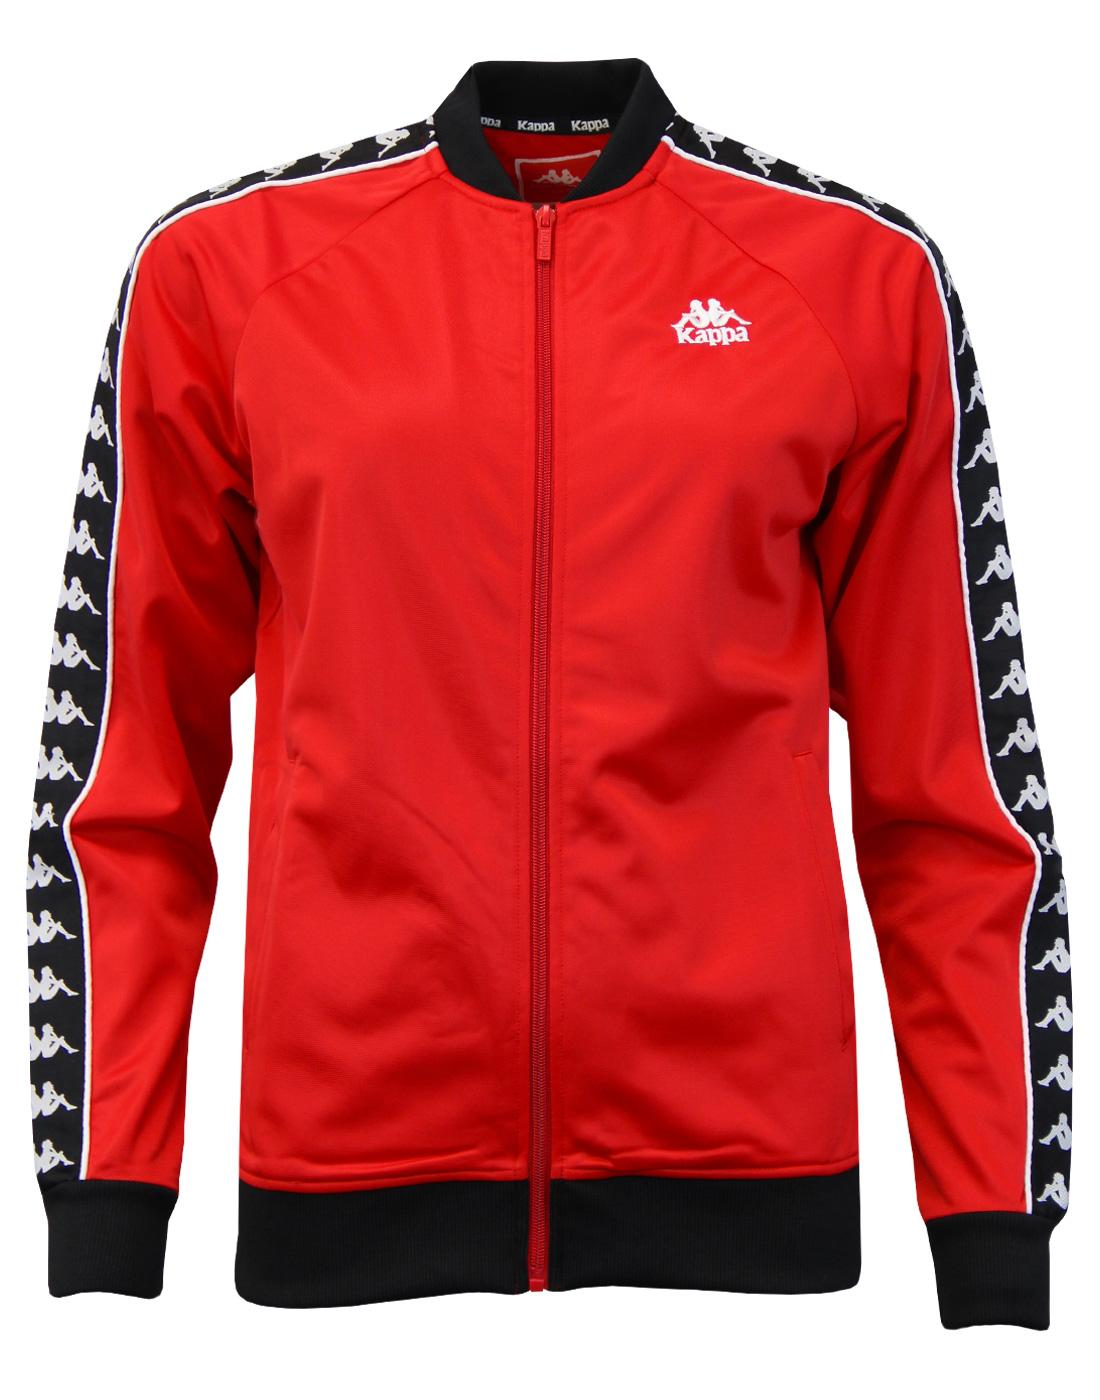 Morecambe KAPPA 80s Tape Sleeve Bomber Track Top